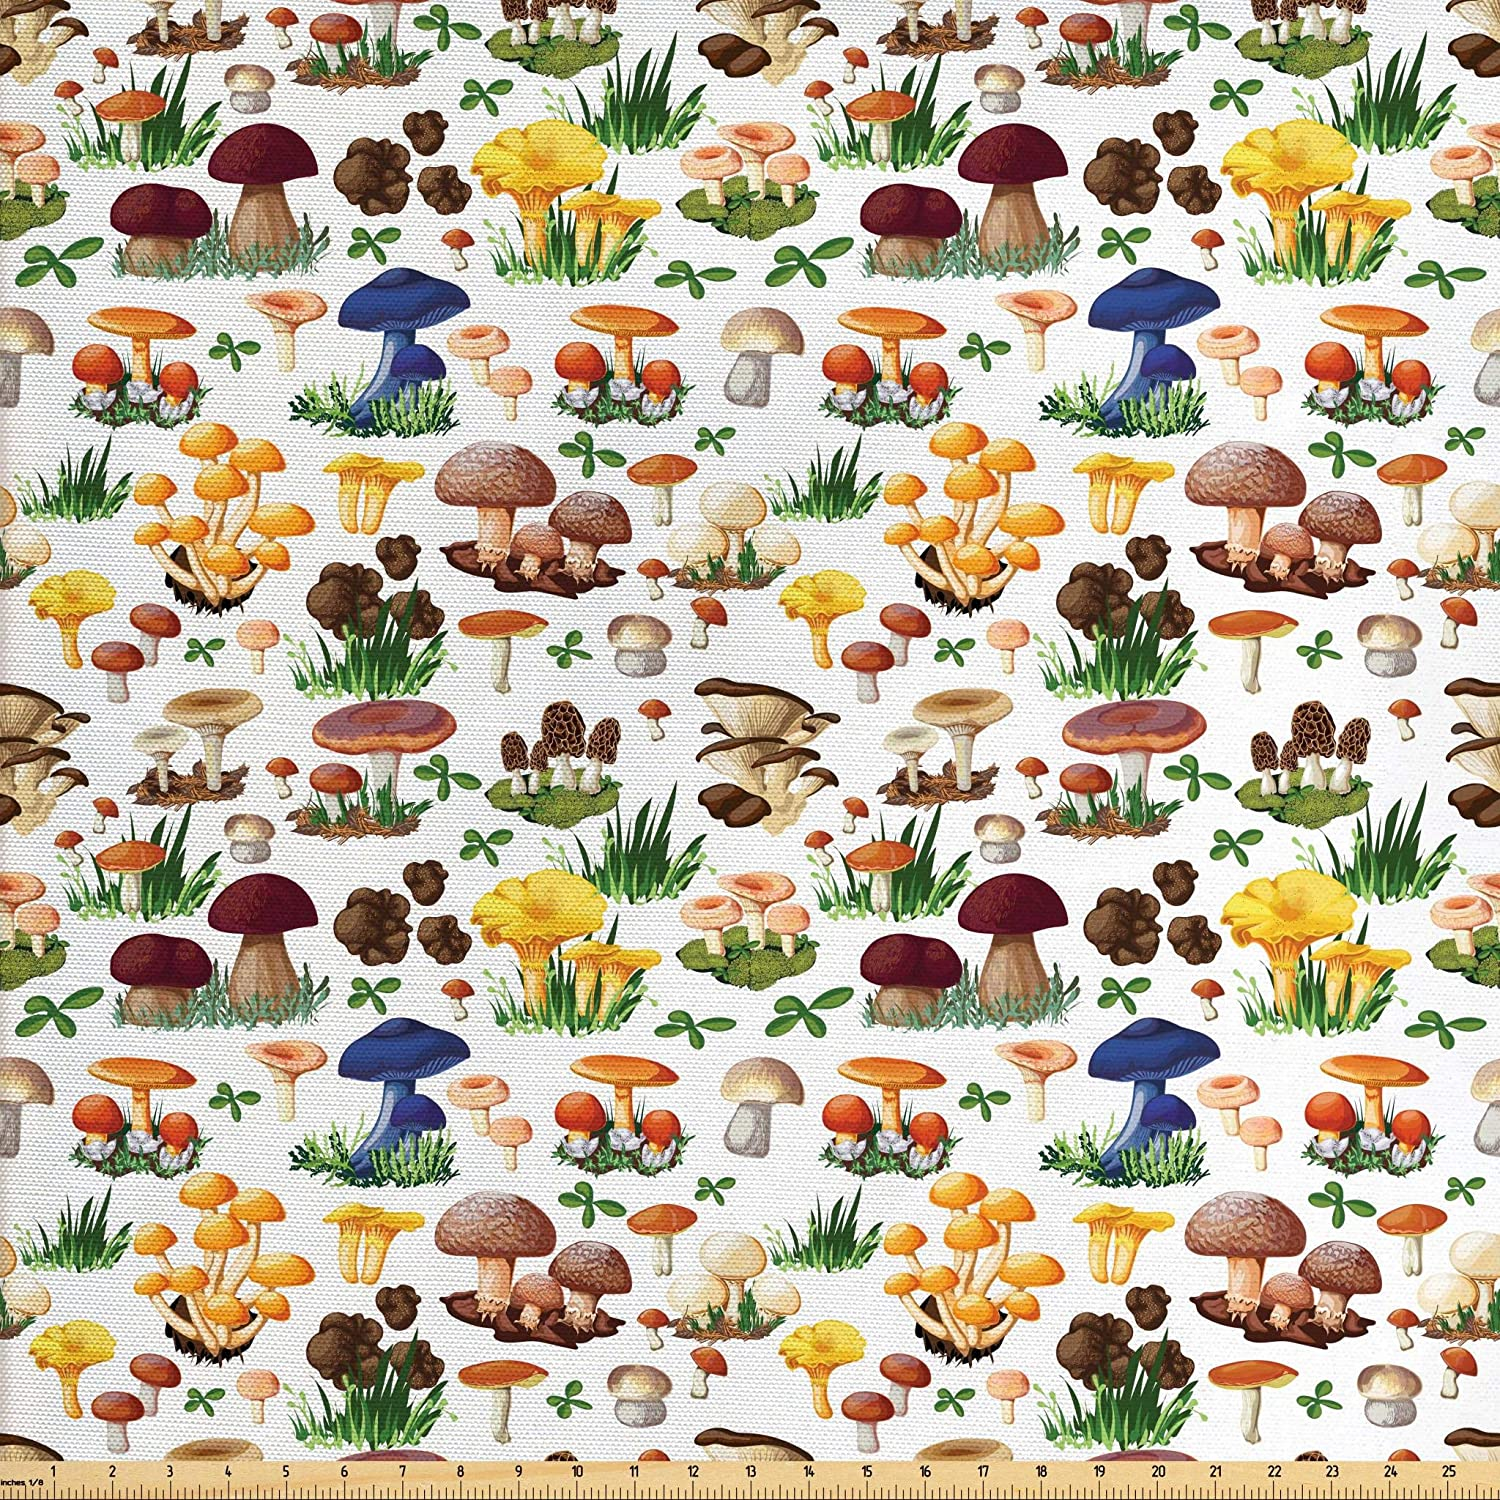 Ambesonne Mushroom Fabric by The Yard, Pattern with Types of Mushrooms Wild Species Organic Natural Food Garden Theme, Decorative Fabric for Upholstery and Home Accents, 1 Yard, White Yellow